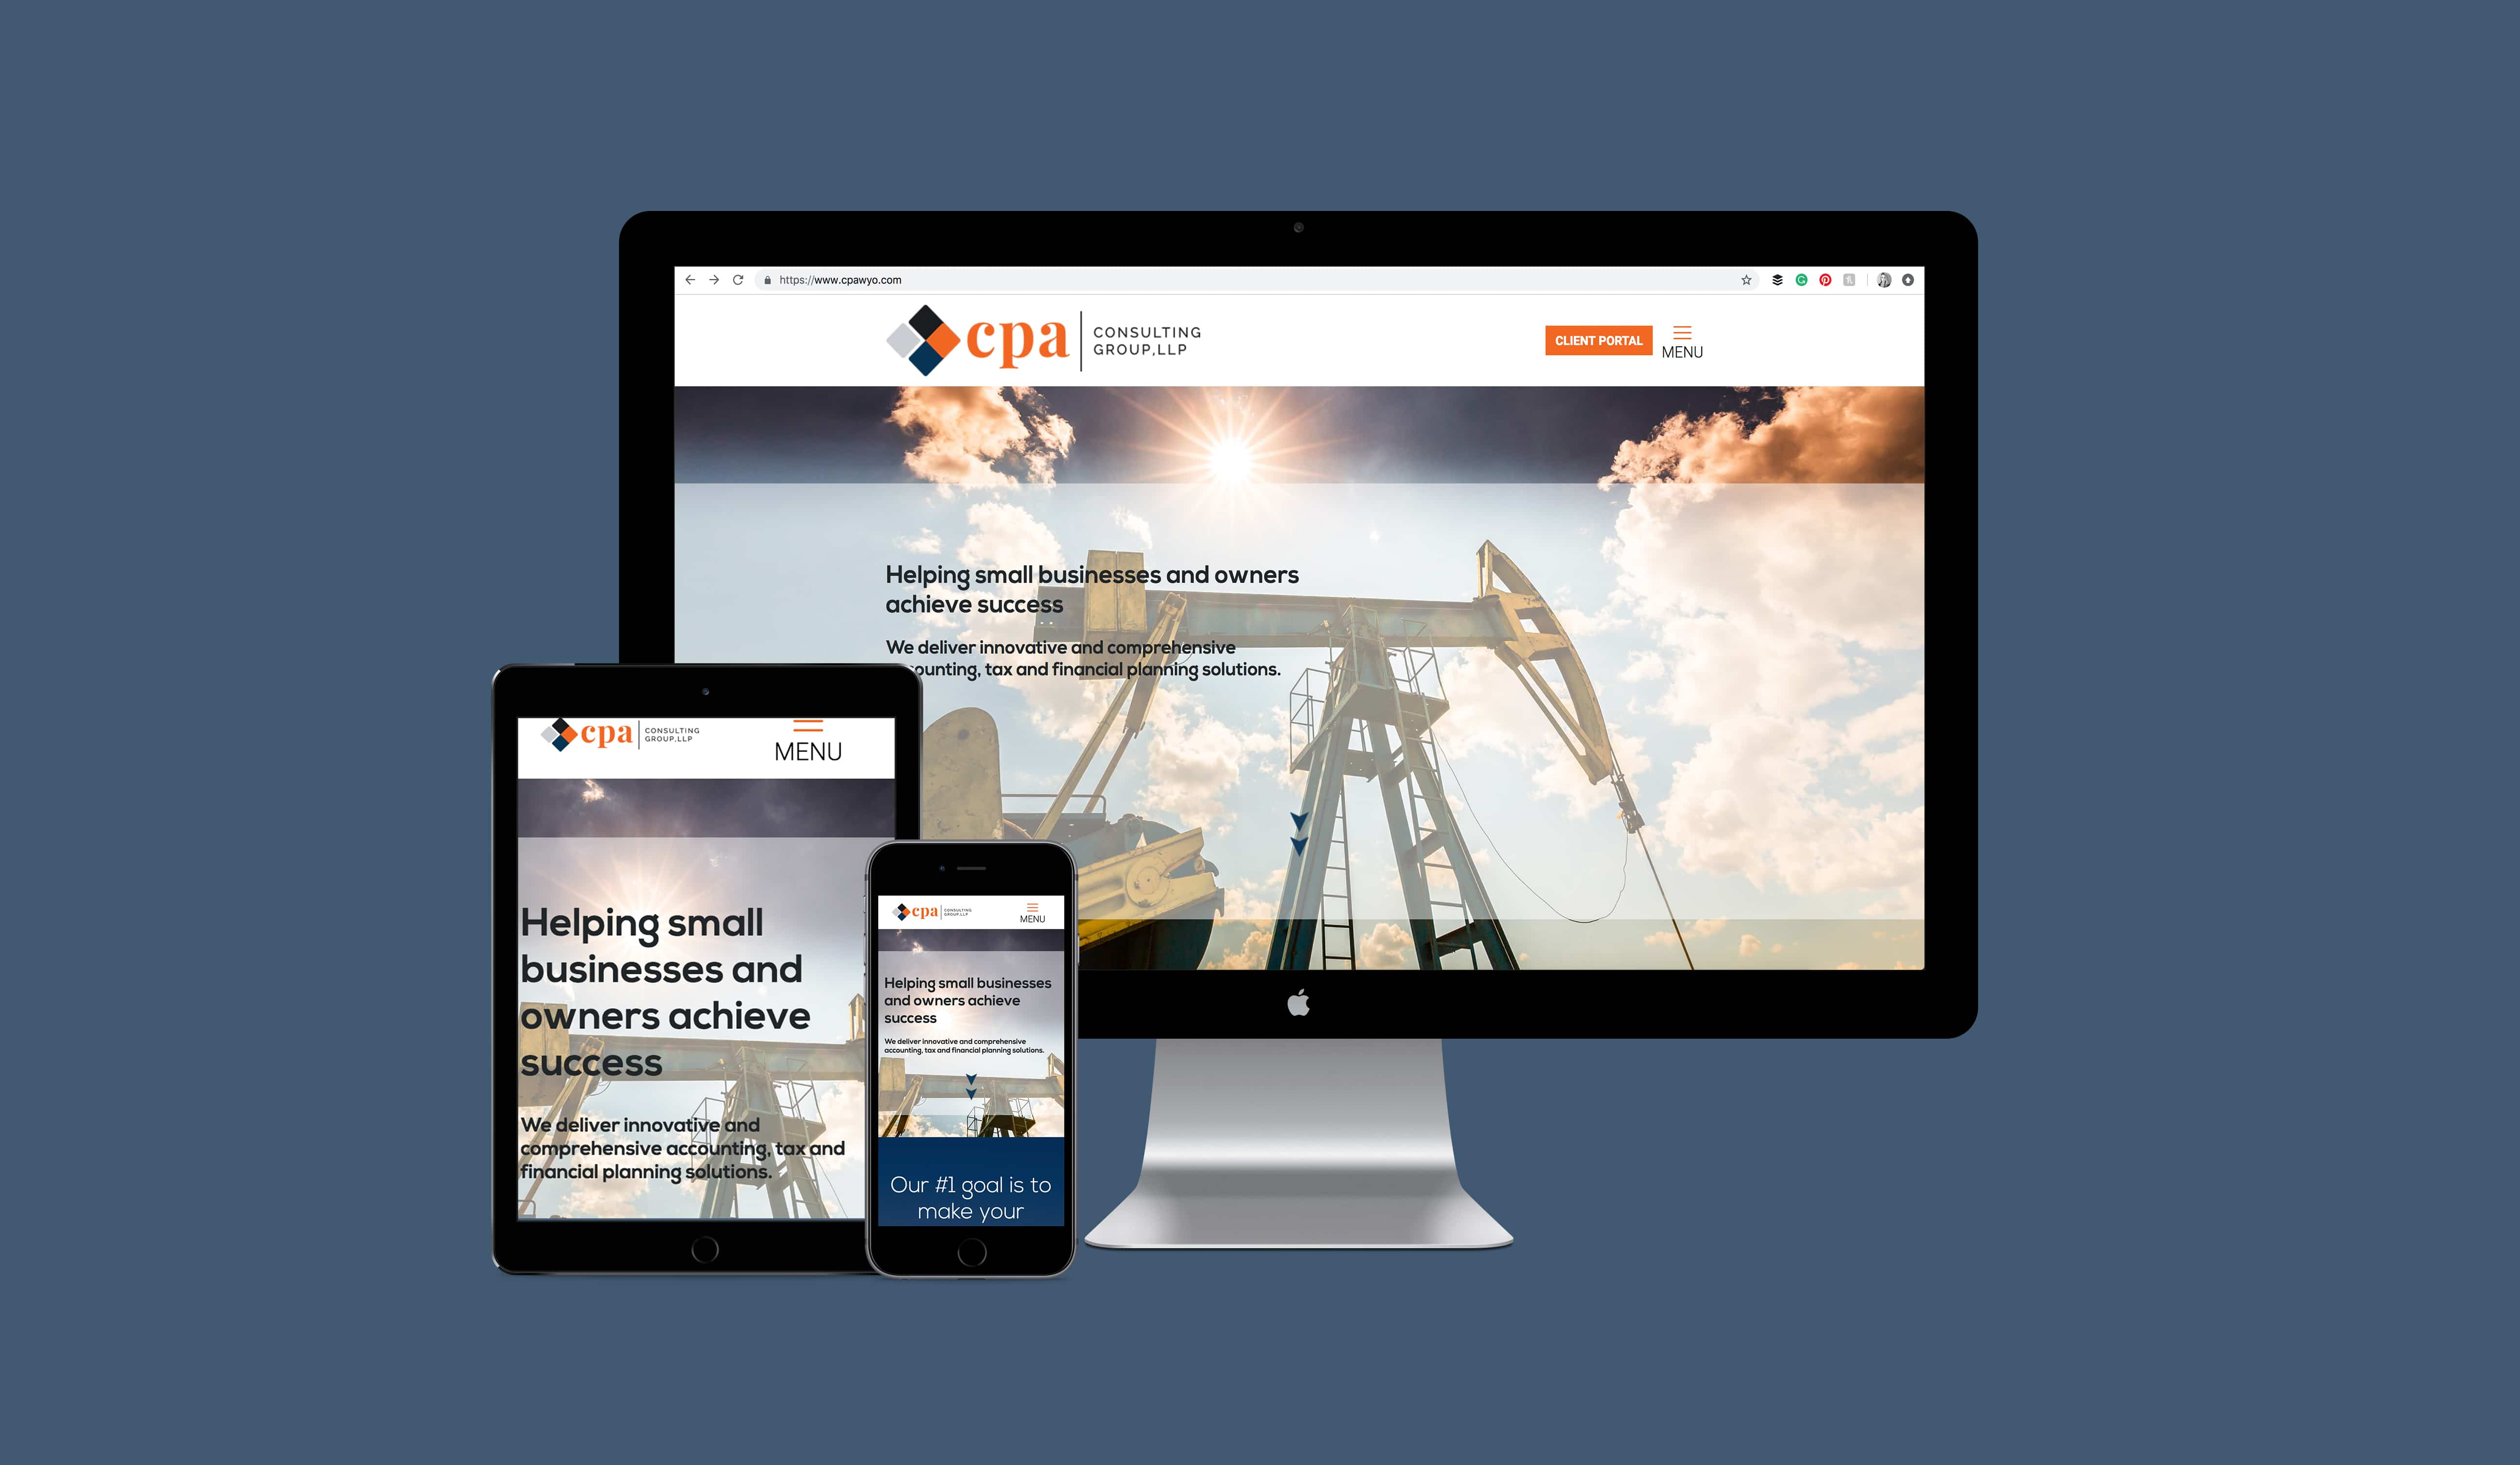 CPA Consulting Group Website